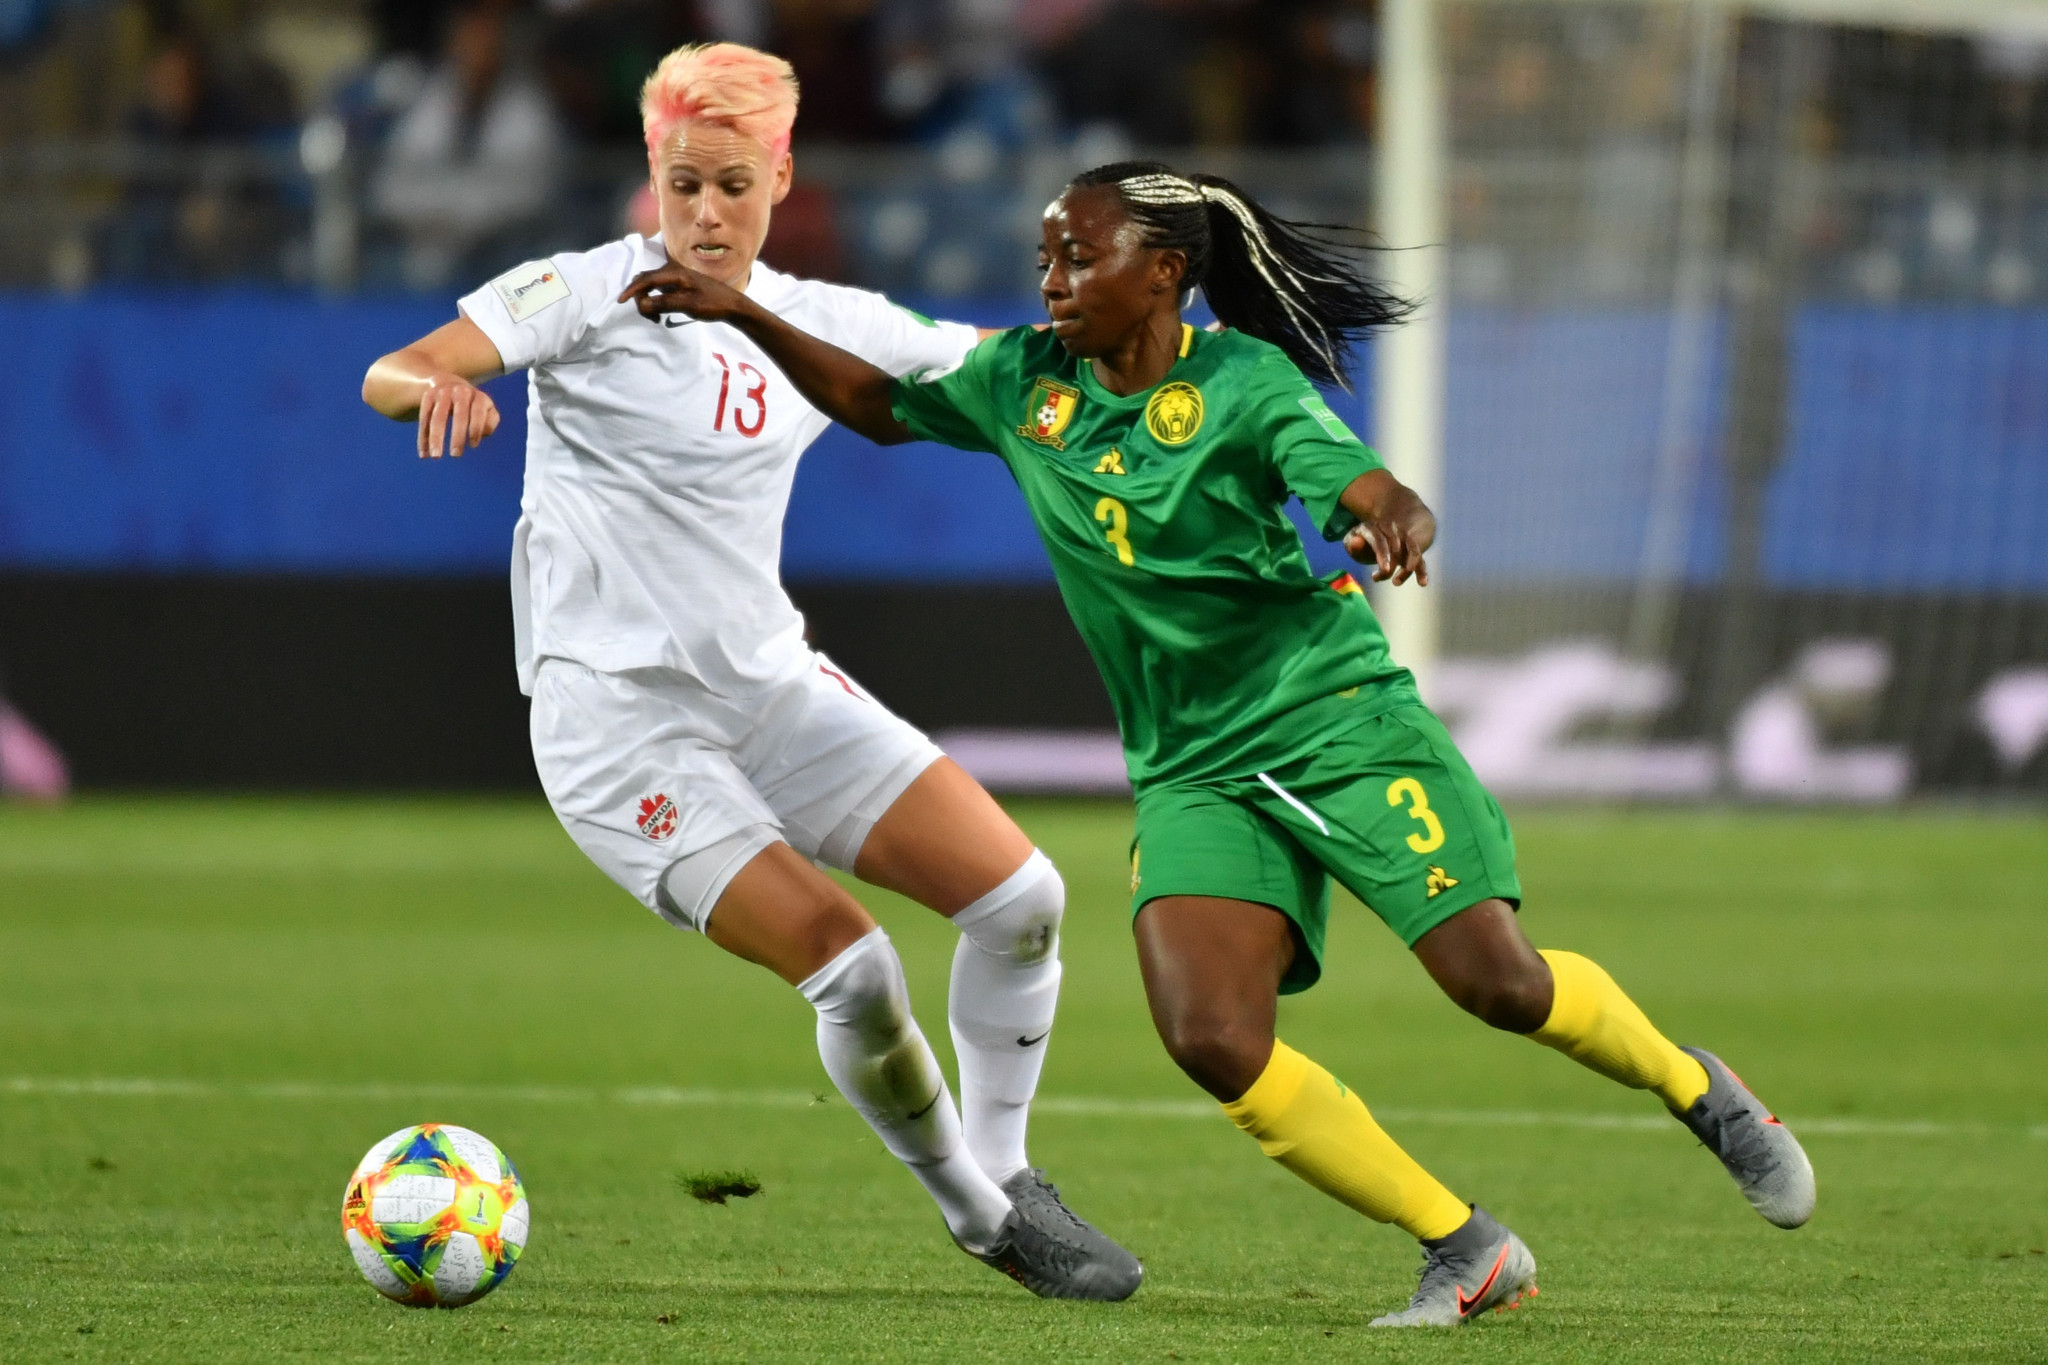 Canada midfielder Sophie Schmidt, left, jostles for possession with Cameroon forward Ajara Nchout ©Getty Images